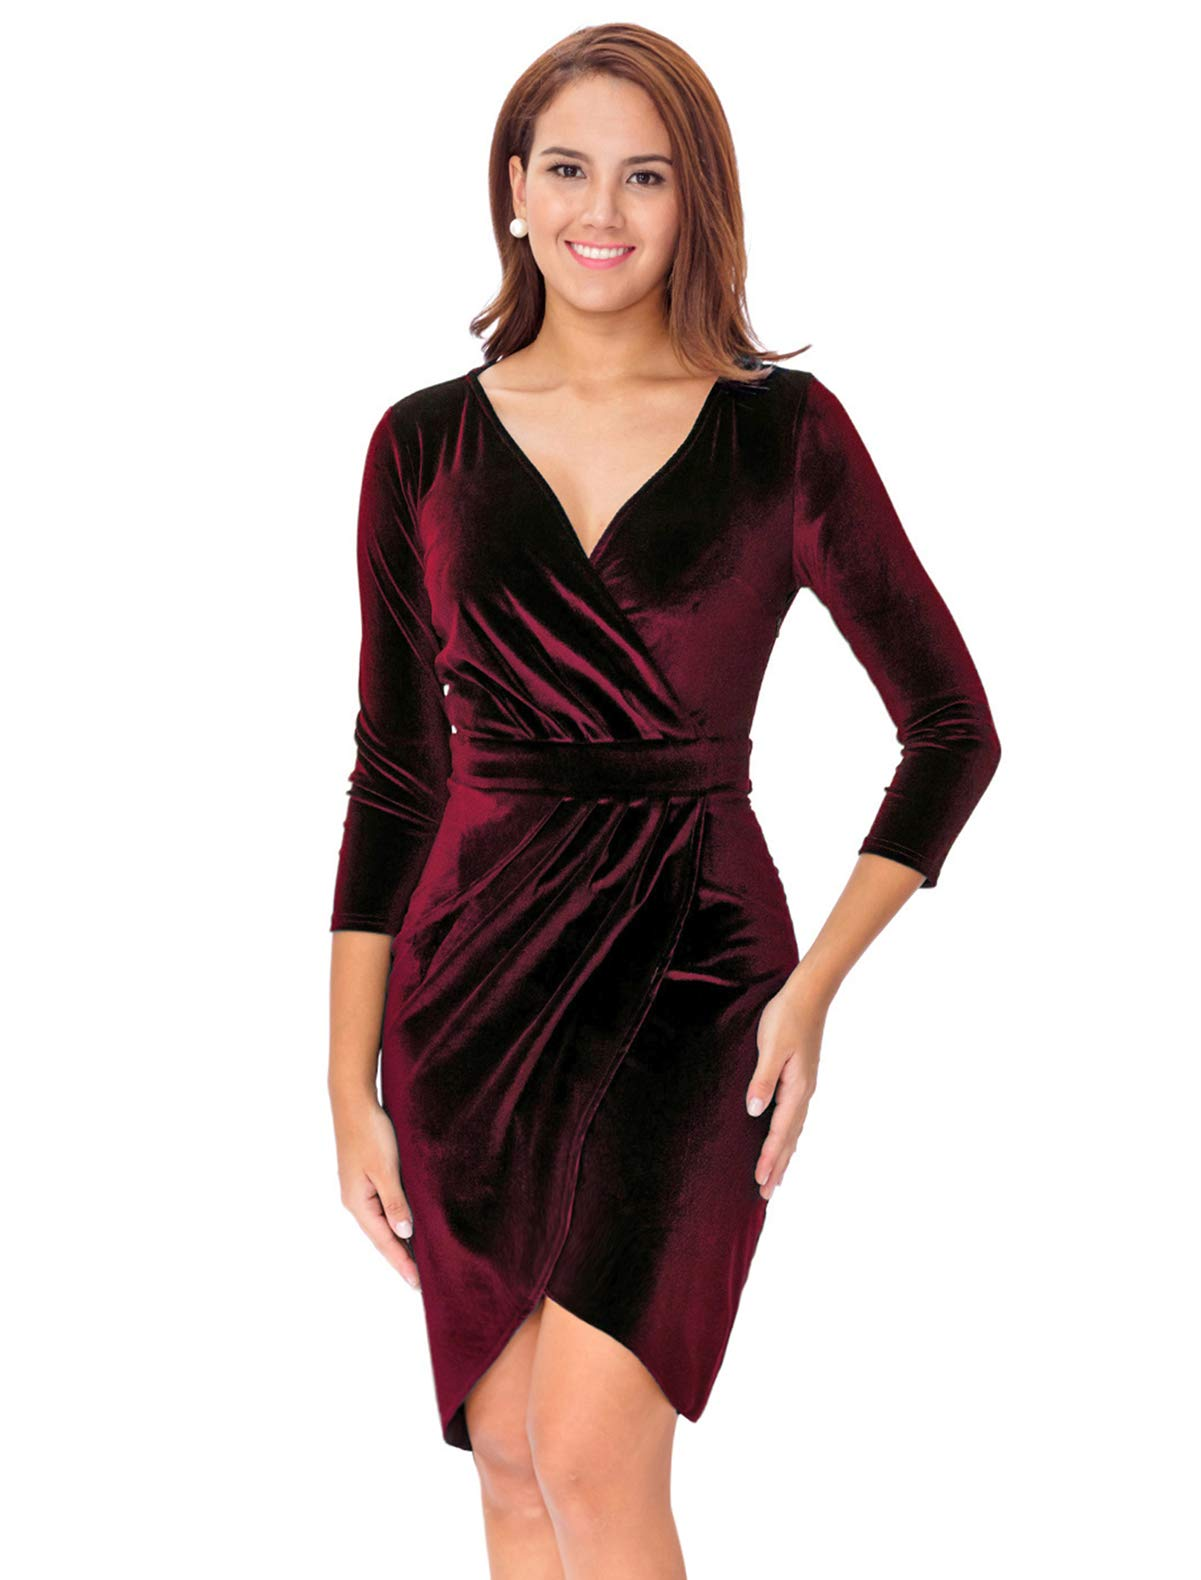 Wedding Guest Dresses - Women's Stretchy A Line Swing Flared Skater Cocktail Party Dress